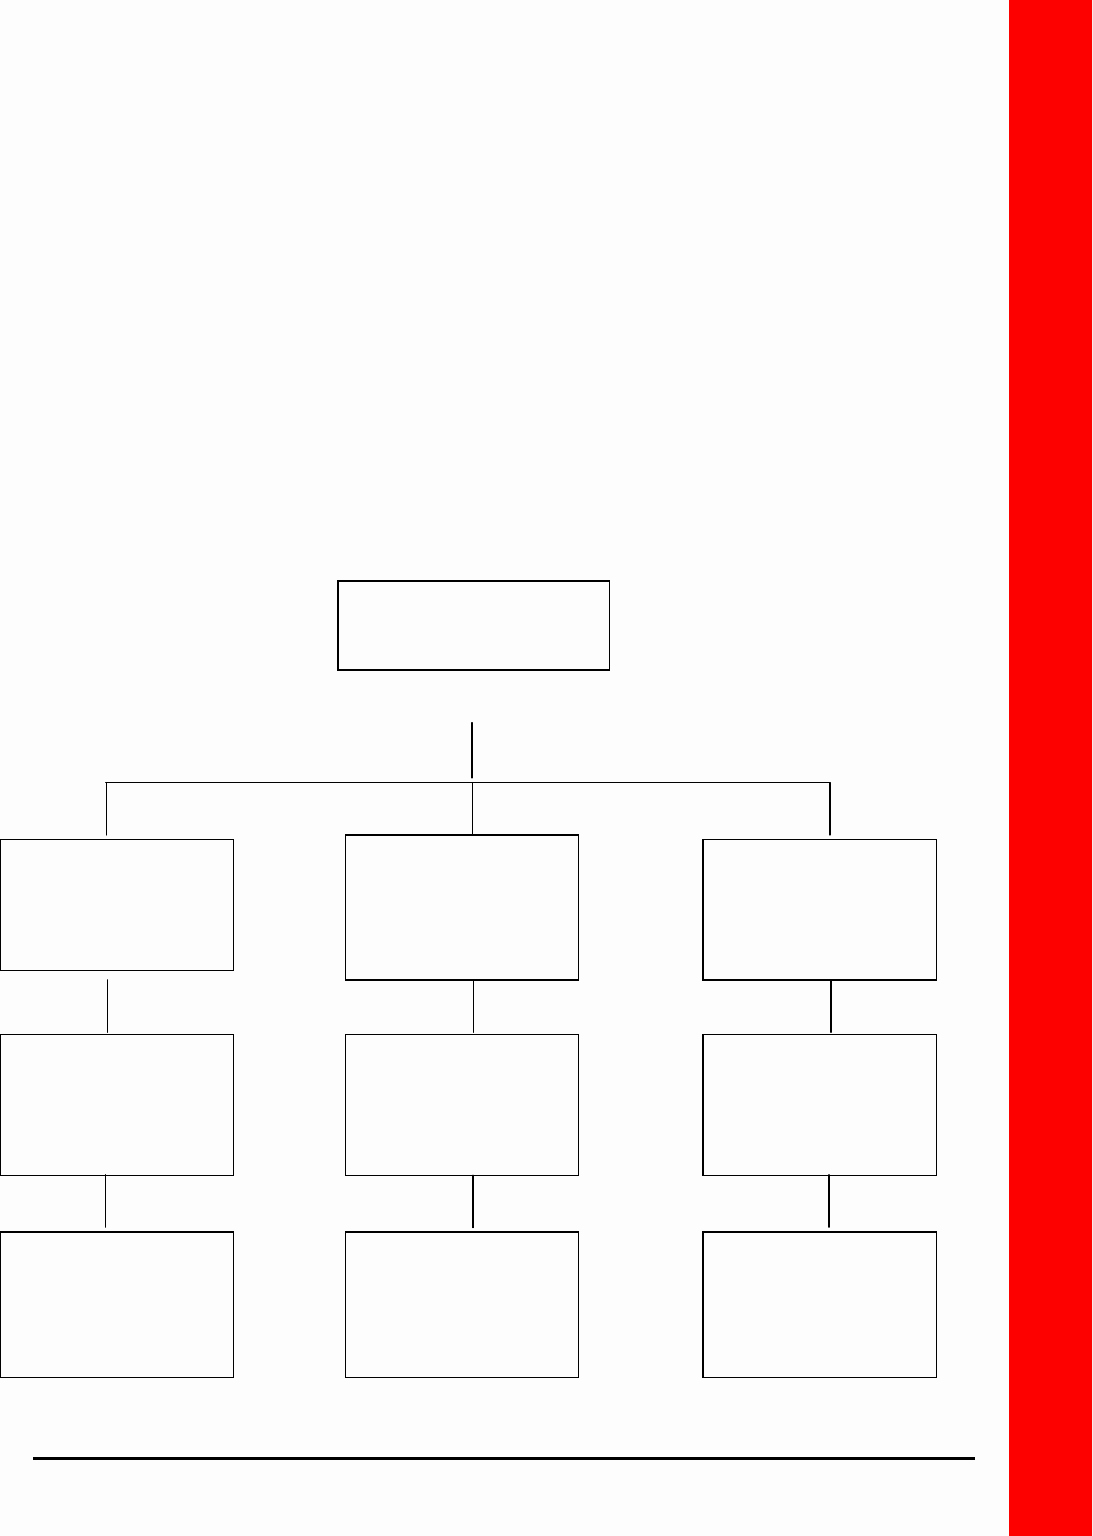 Emergency Call Tree Template Inspirational Download Emergency Phone Tree Template Free Download for